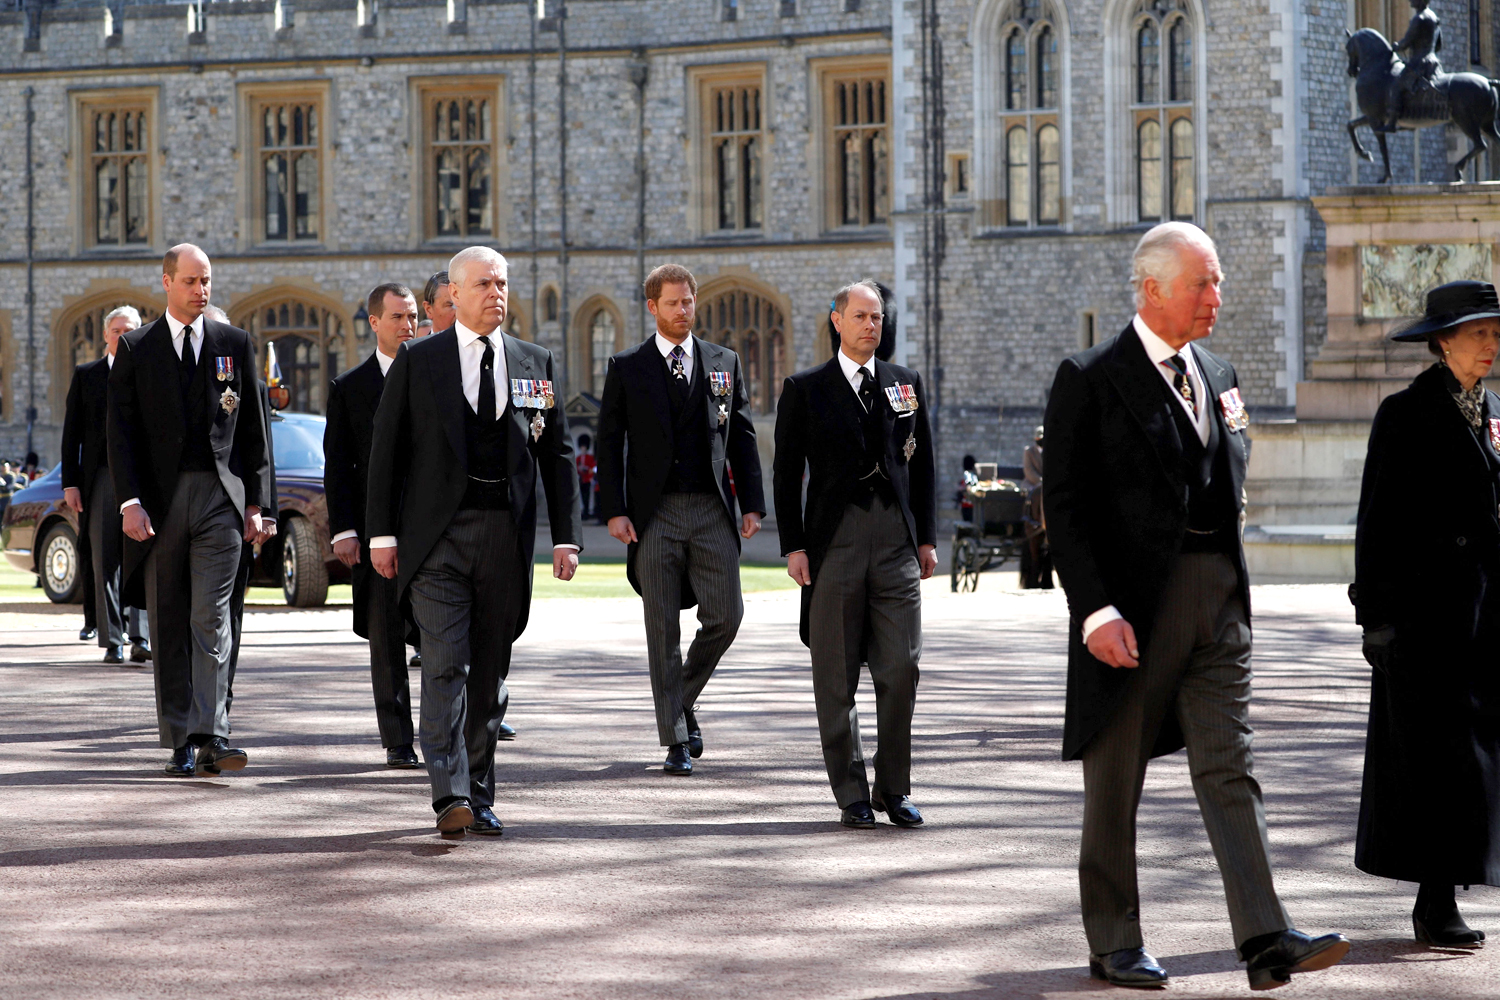 Britain's Prince Charles, Prince of Wales (R), Britain's Prince William, Duke of Cambridge, (L) and Britain's Prince Harry, Duke of Sussex